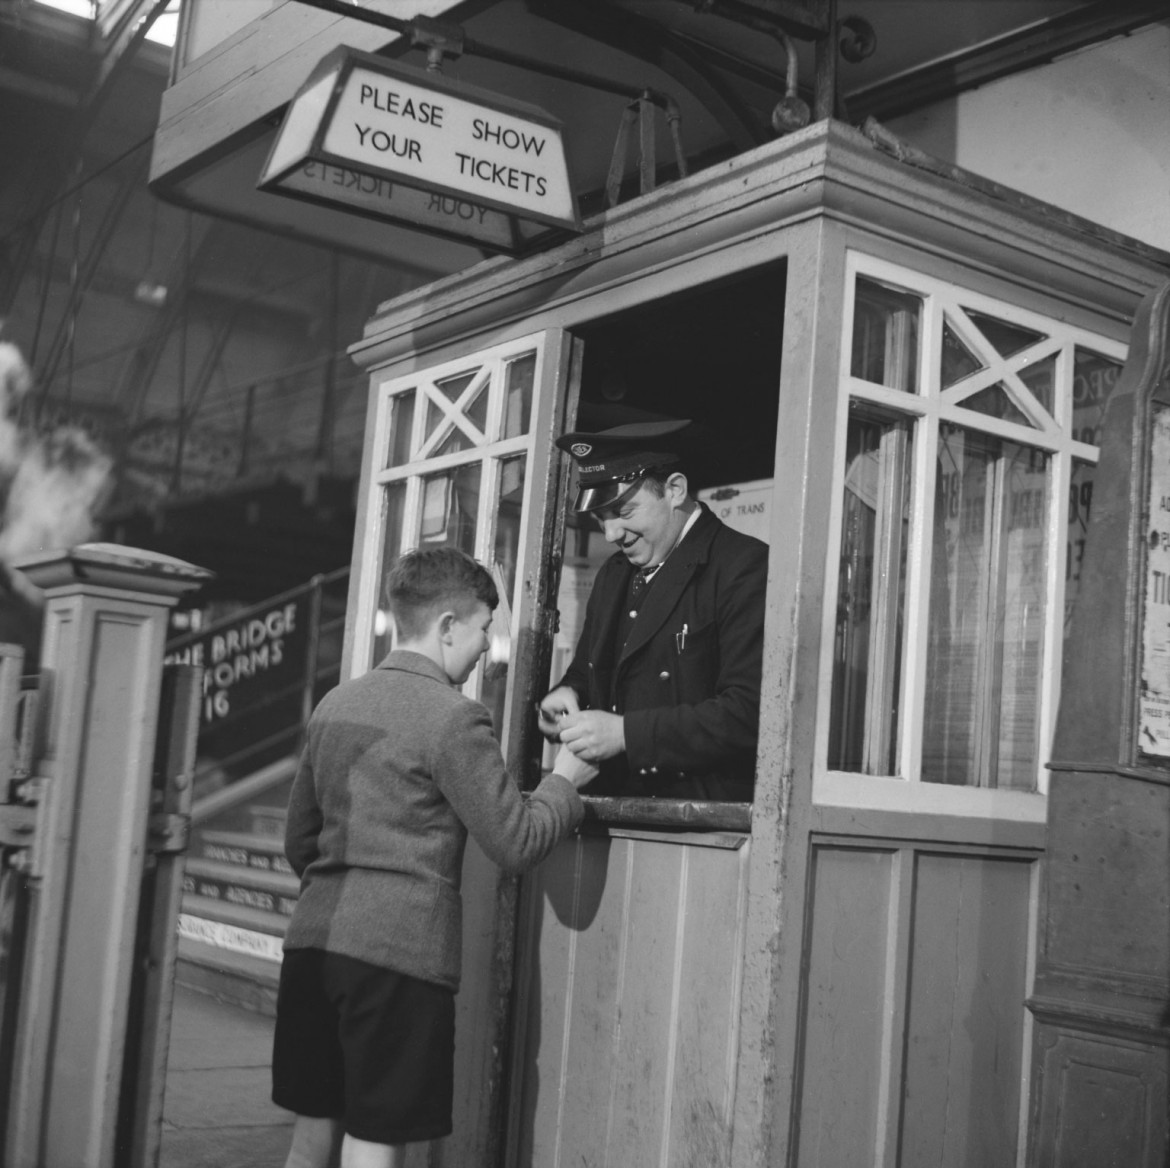 Tickets please: a young passenger heads off on his travels from York station in 1950